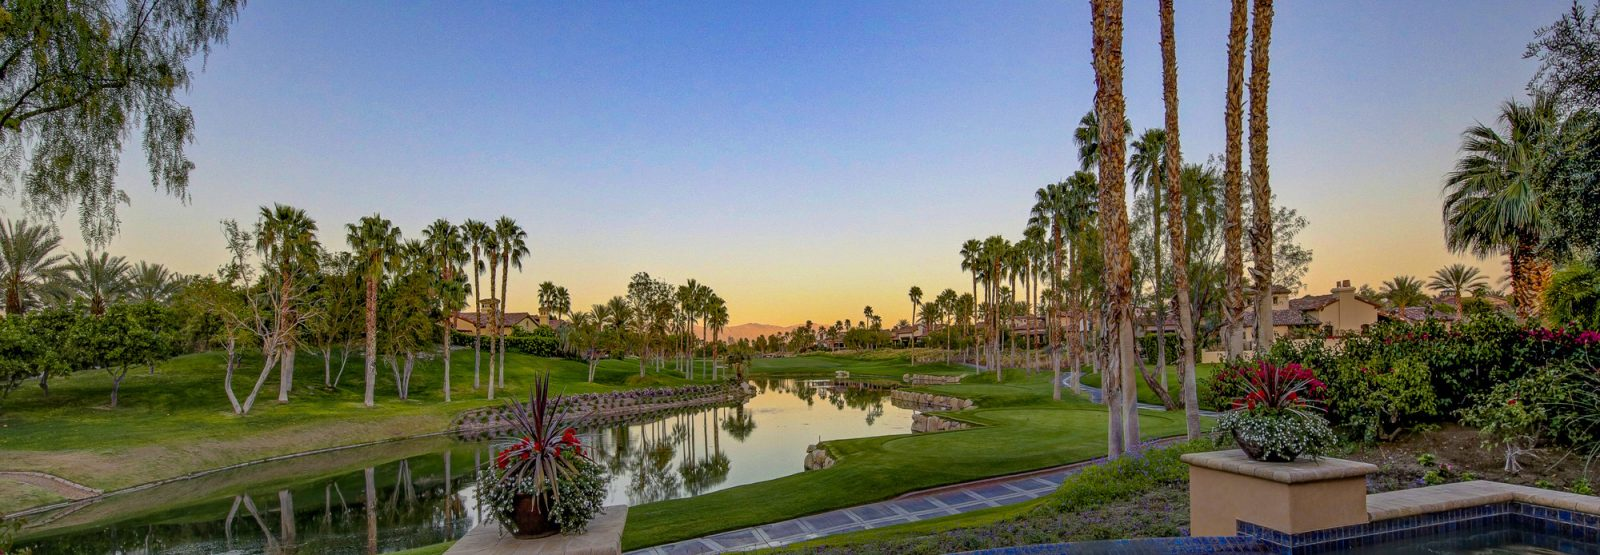 palm desert hindu dating site Search for cheap and discount best western hotel prices in indian wells, ca for  your  best western date tree hotel - indio  economical suburban hotel  complimentary breakfast is offered good accessibility by car fantastic service   1633 south palm canyon dr, palm springs, ca 92264 ~1485 miles west of  indian.